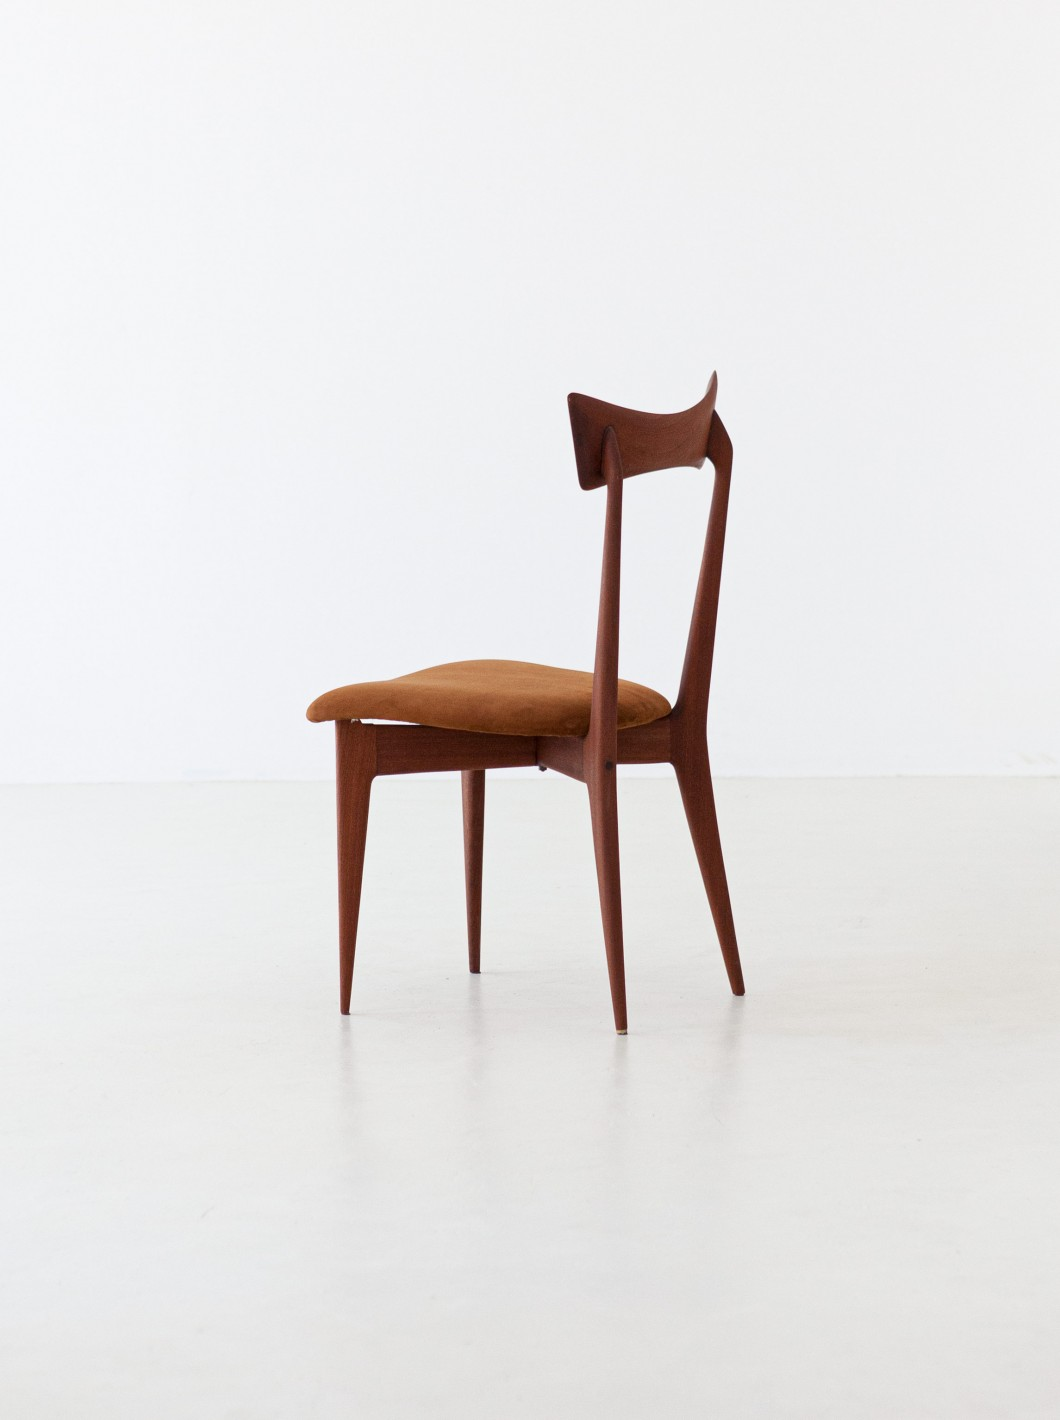 1950s mahogany and suede leather dining chairs by Ico Parisi SE296 – Not Available